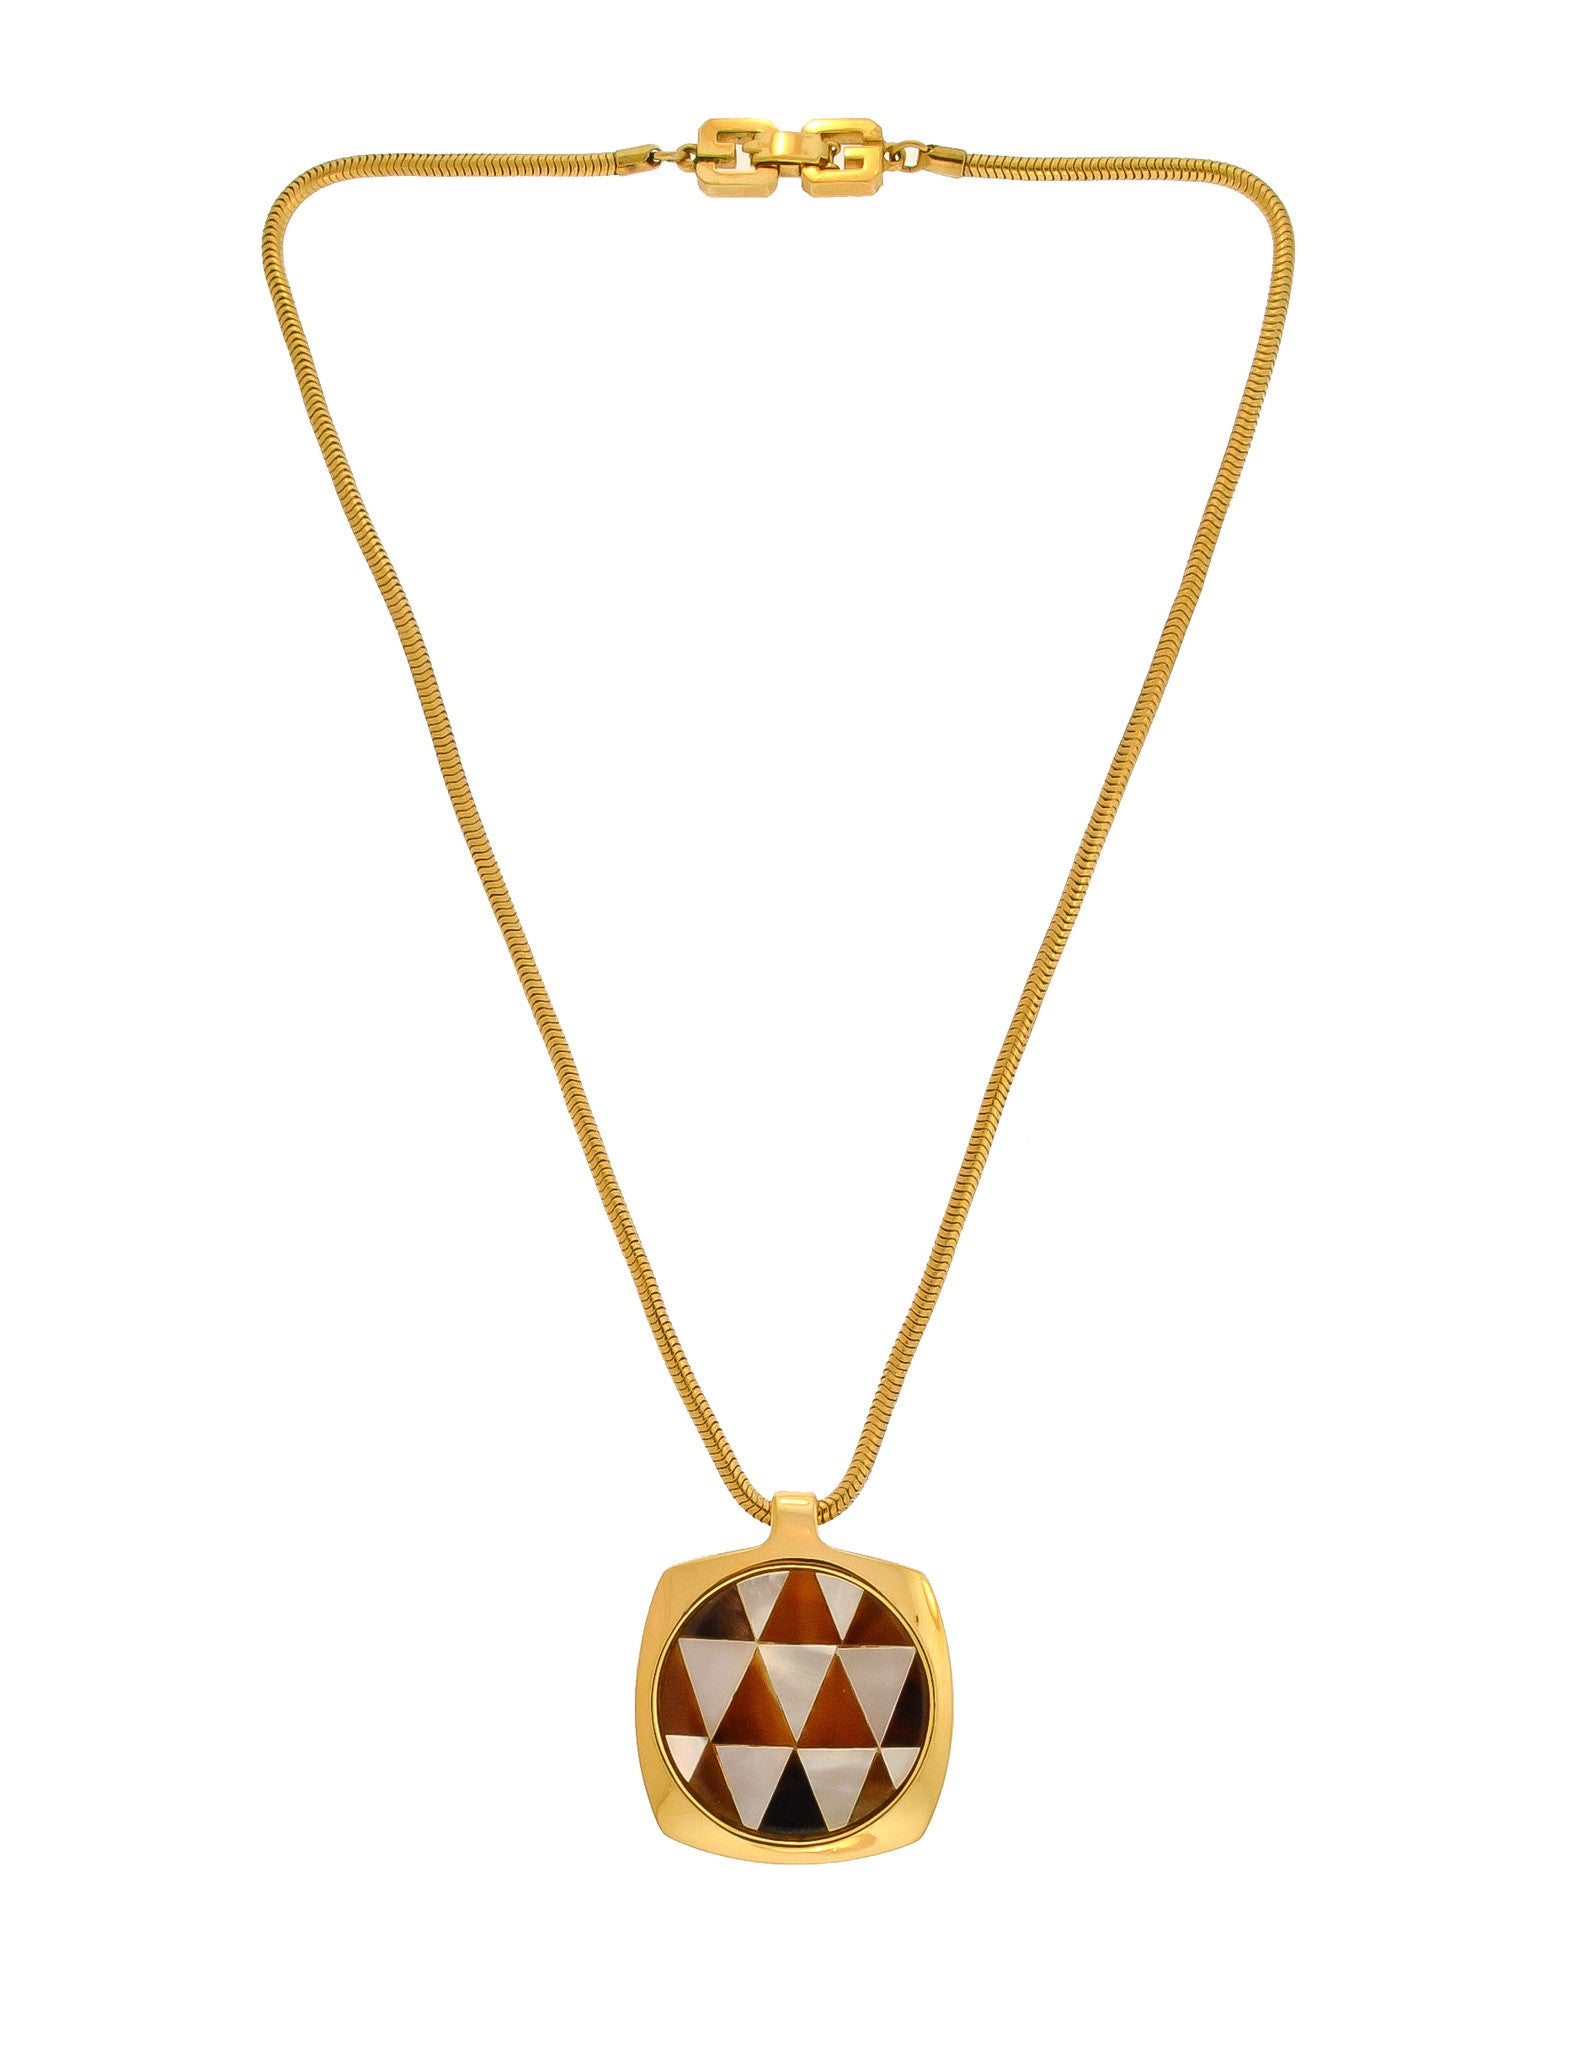 Givenchy Vintage Triangle Inlay Gold Necklace - Amarcord Vintage Fashion  - 1